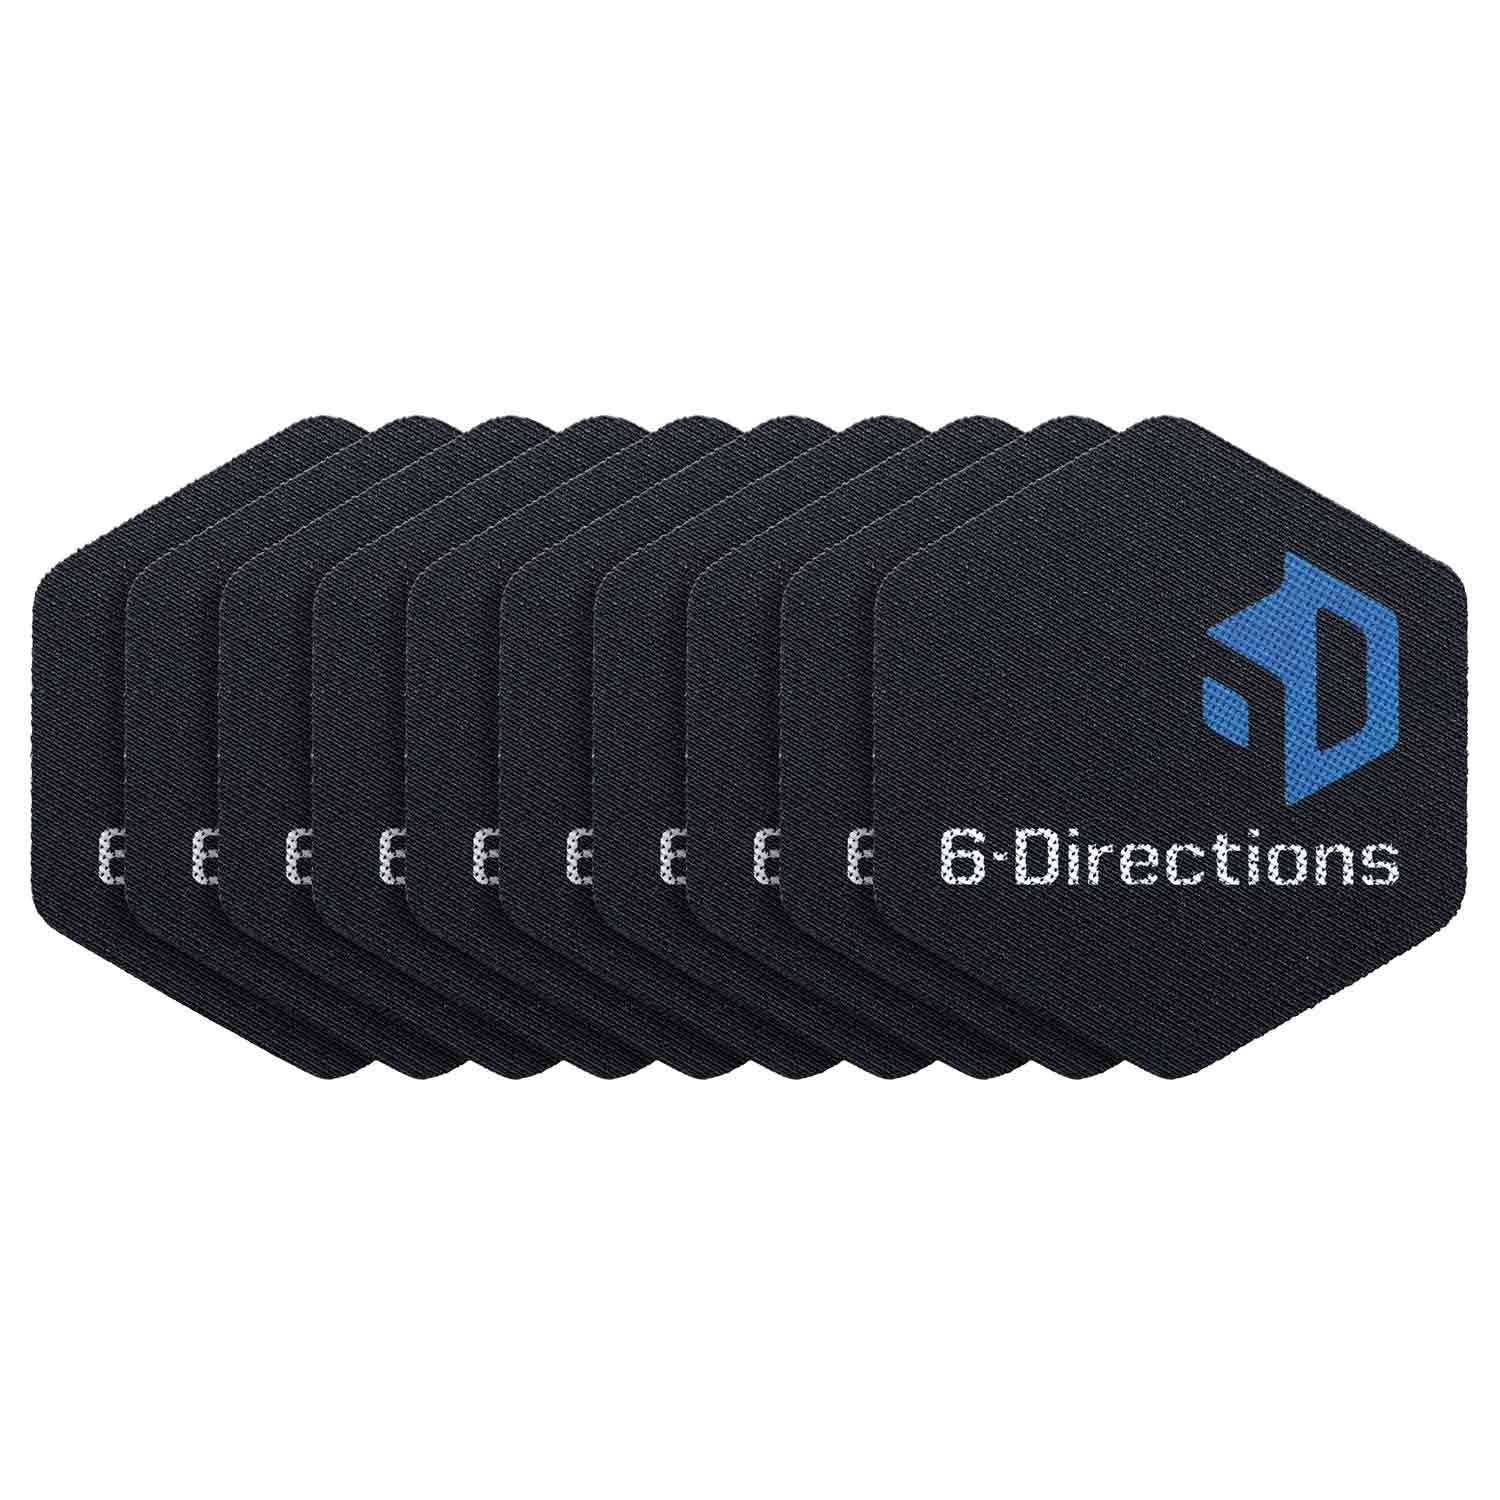 6-Directions Care 6D Carebox (10stk) - 6-Directions